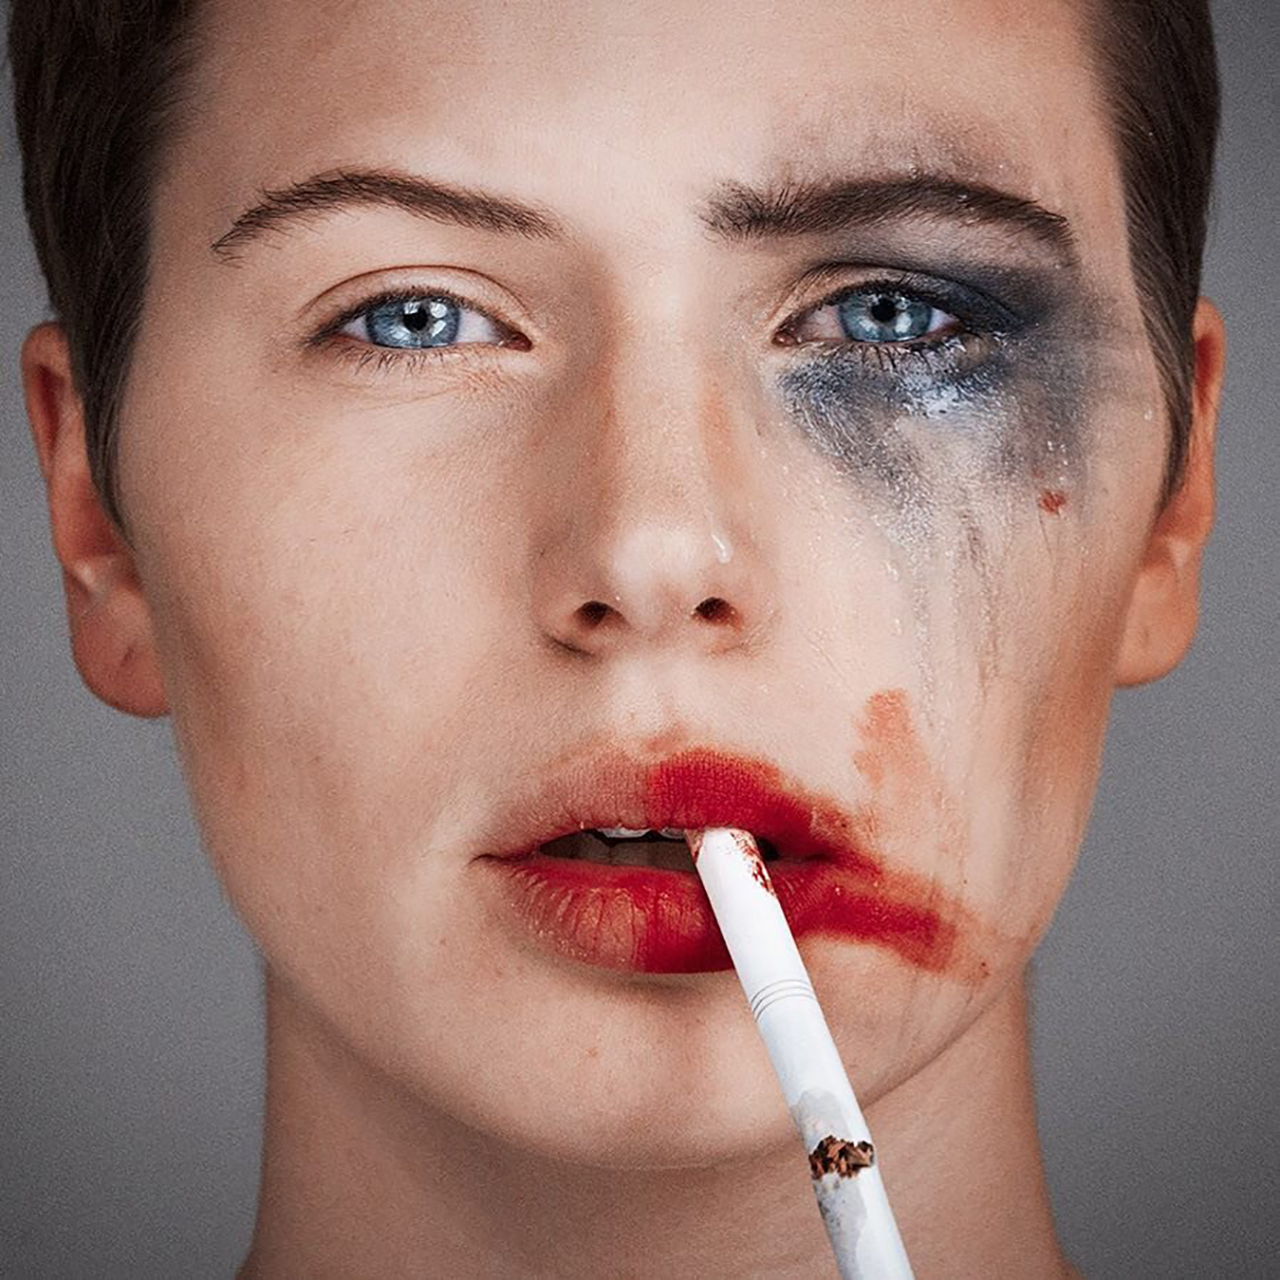 Tyler Shields photograph of a women with one side of her face with smeared make up and a cigarette dangling from her right side of her lip and the left side of her face all clean